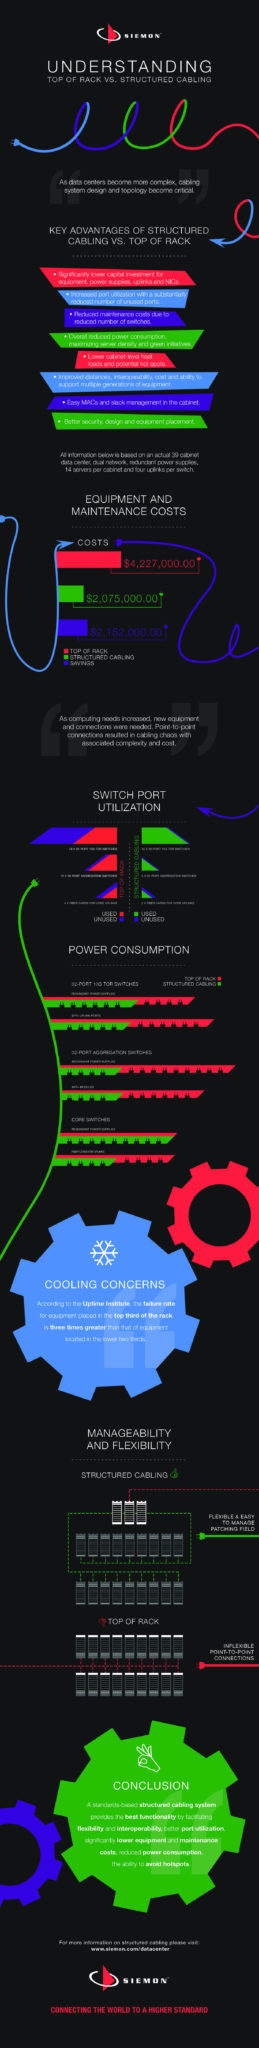 Infographic TOR versus Structured Cabling